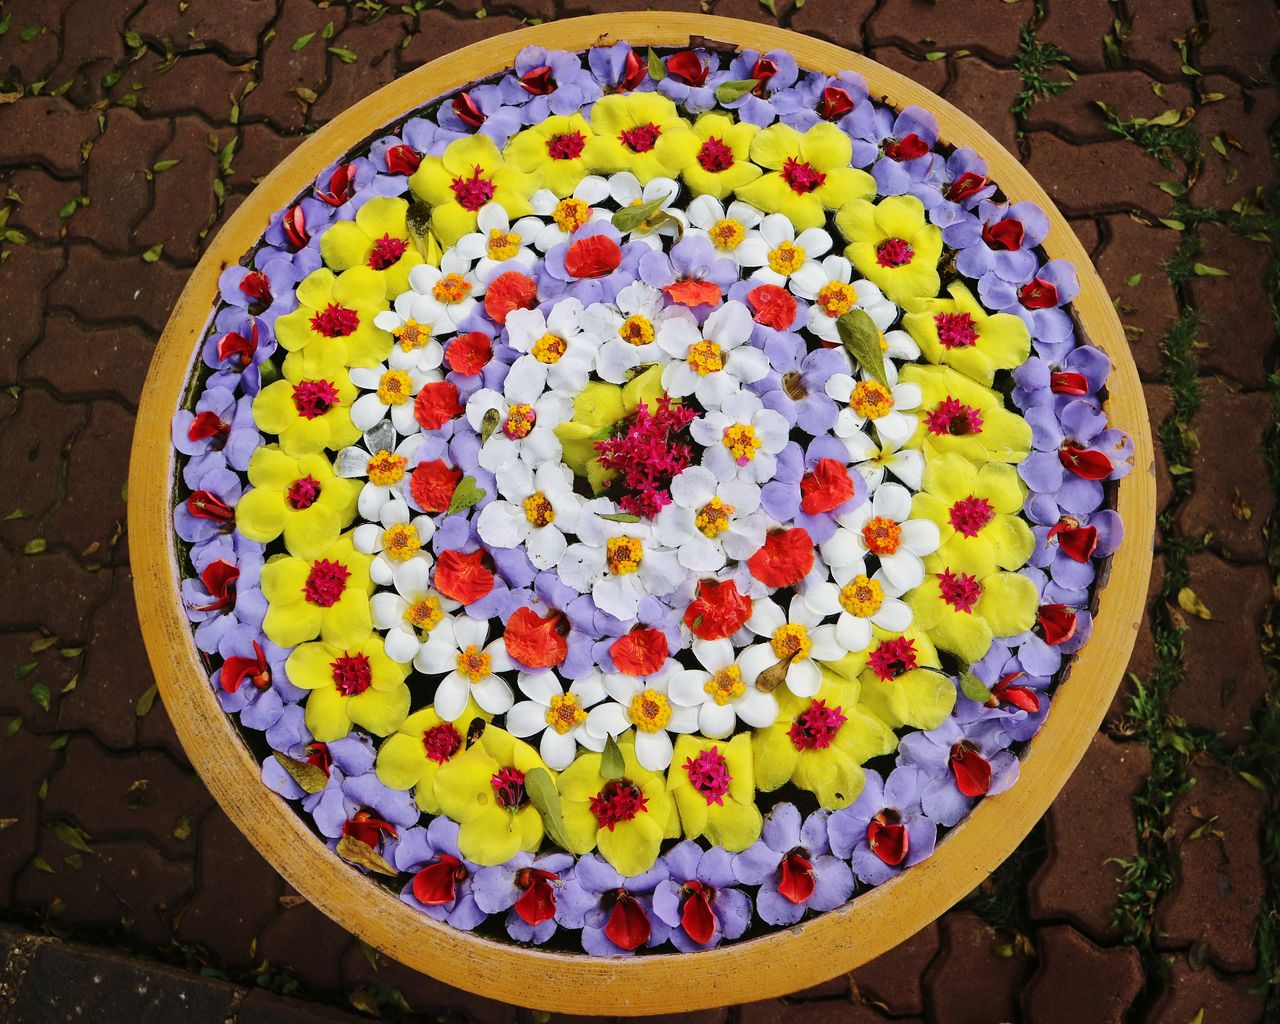 HIGH ANGLE VIEW OF MULTI COLORED FLOWERS IN CONTAINER ON STONE